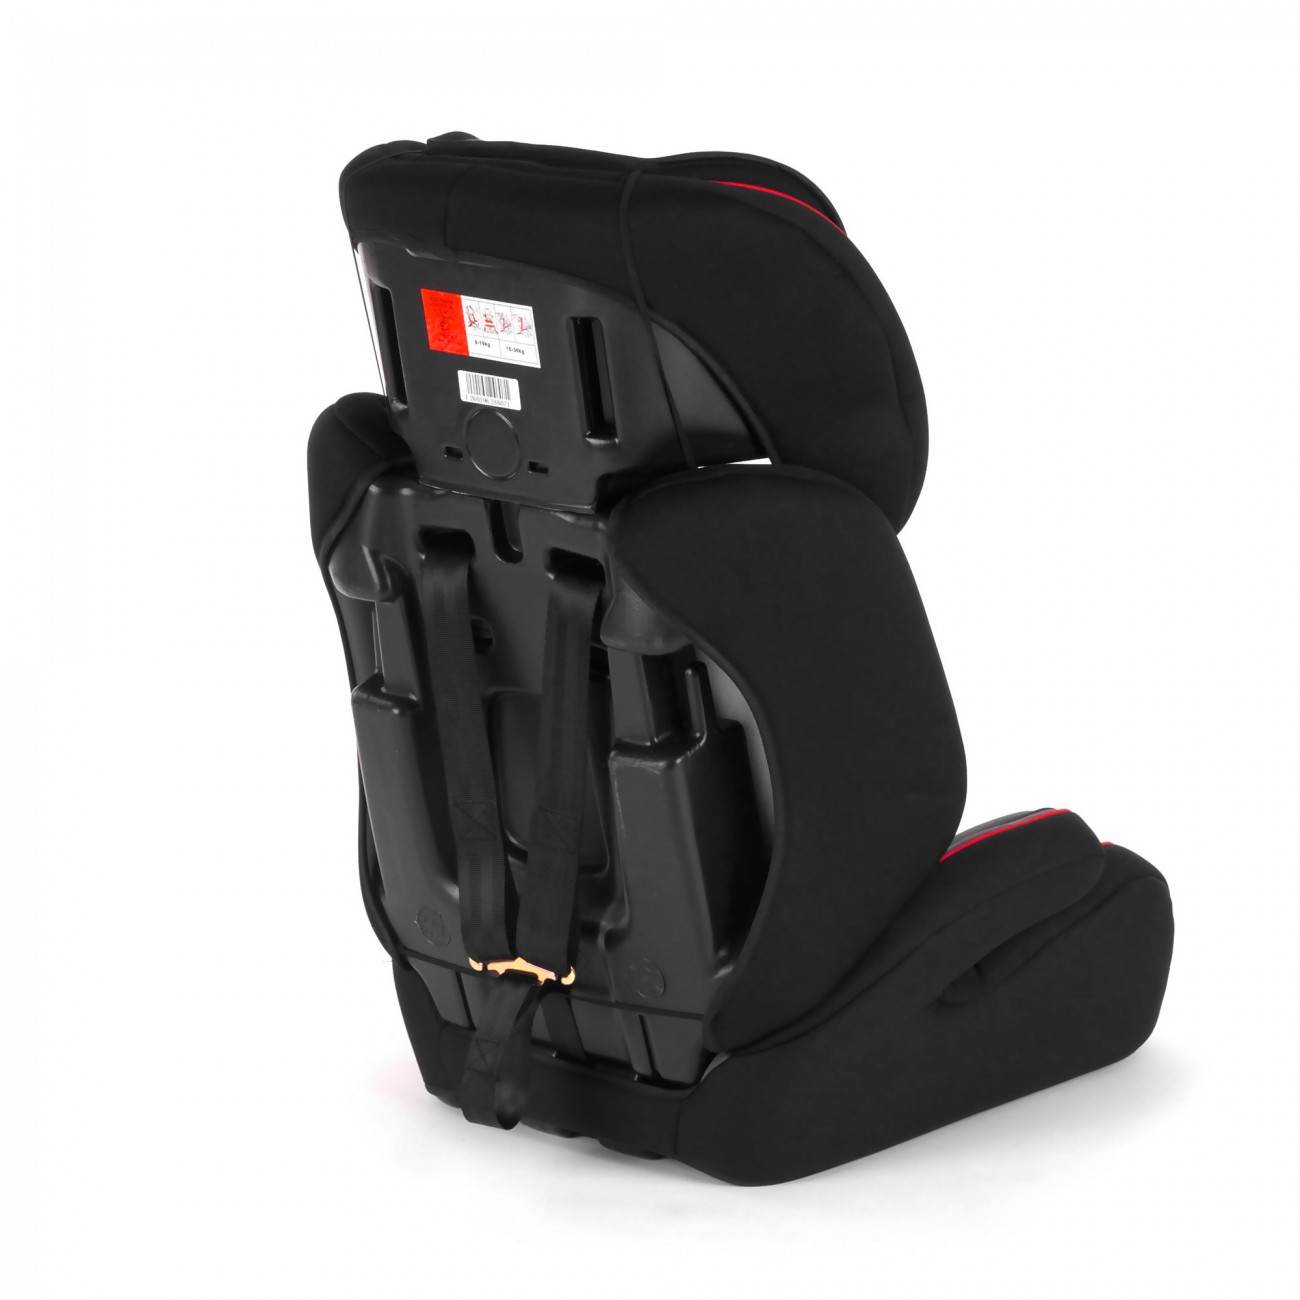 Baby vivo si ge auto pour enfants tom groupe 1 2 3 de 9 for Siege auto 2